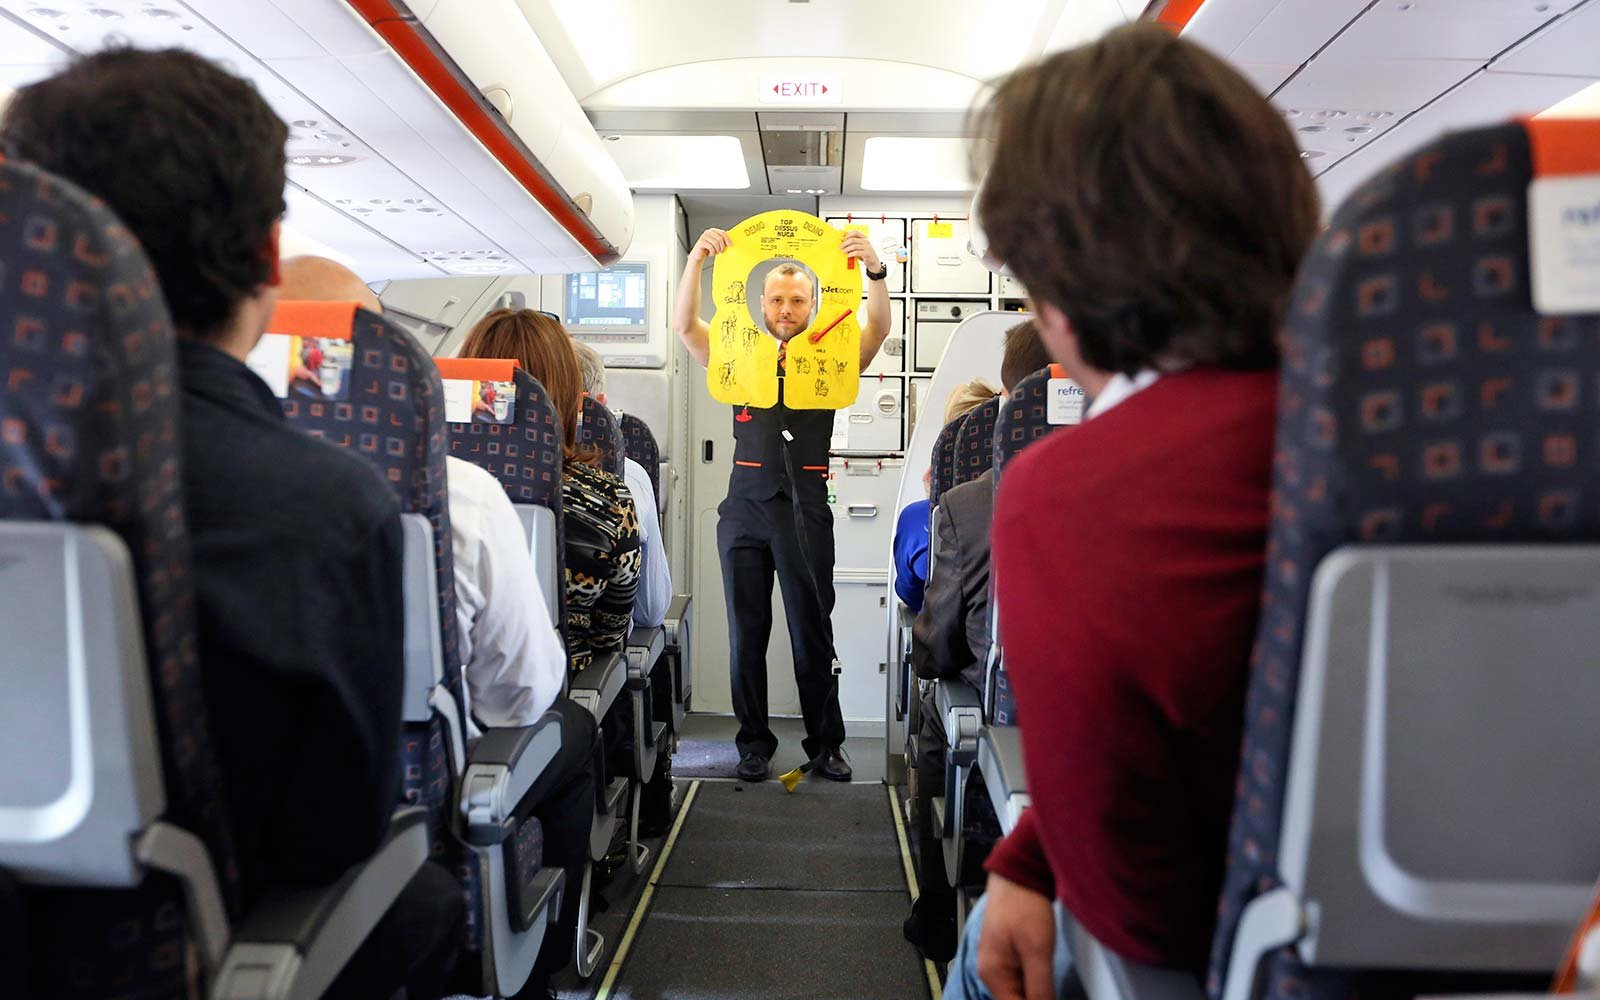 EasyJet flight attendant performs a safety demonstration United Kingdom